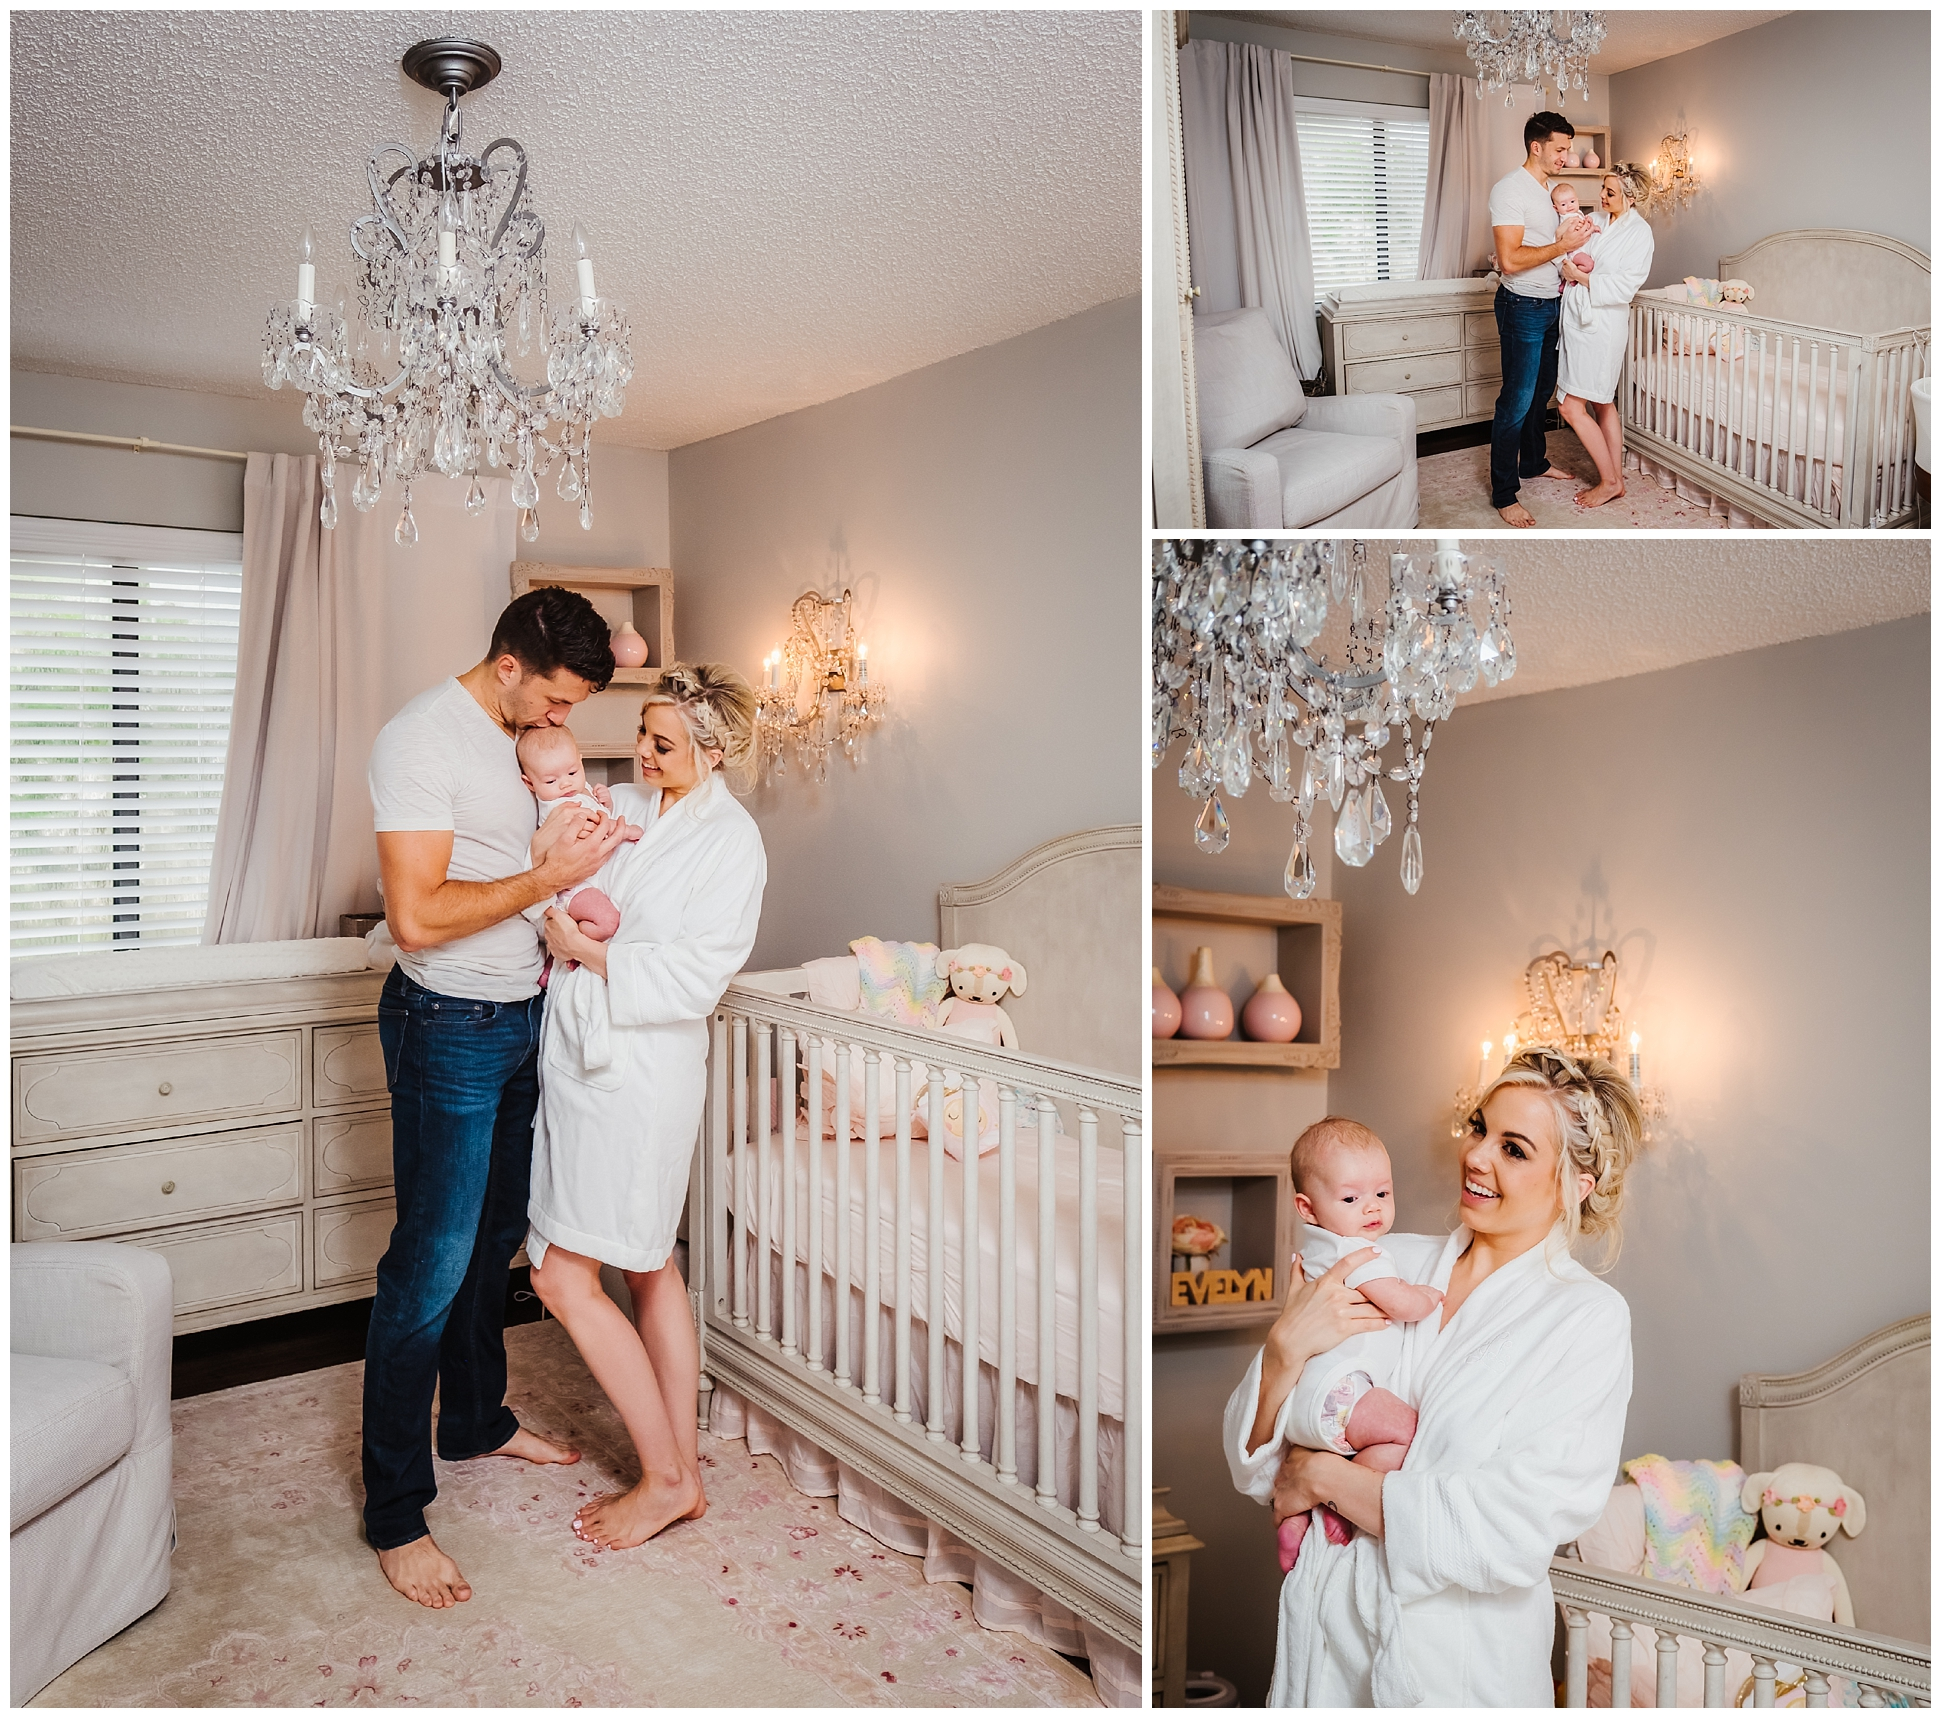 in-home-lifestyle-baby-portratis-tampa-photographer-beachbody_0177.jpg